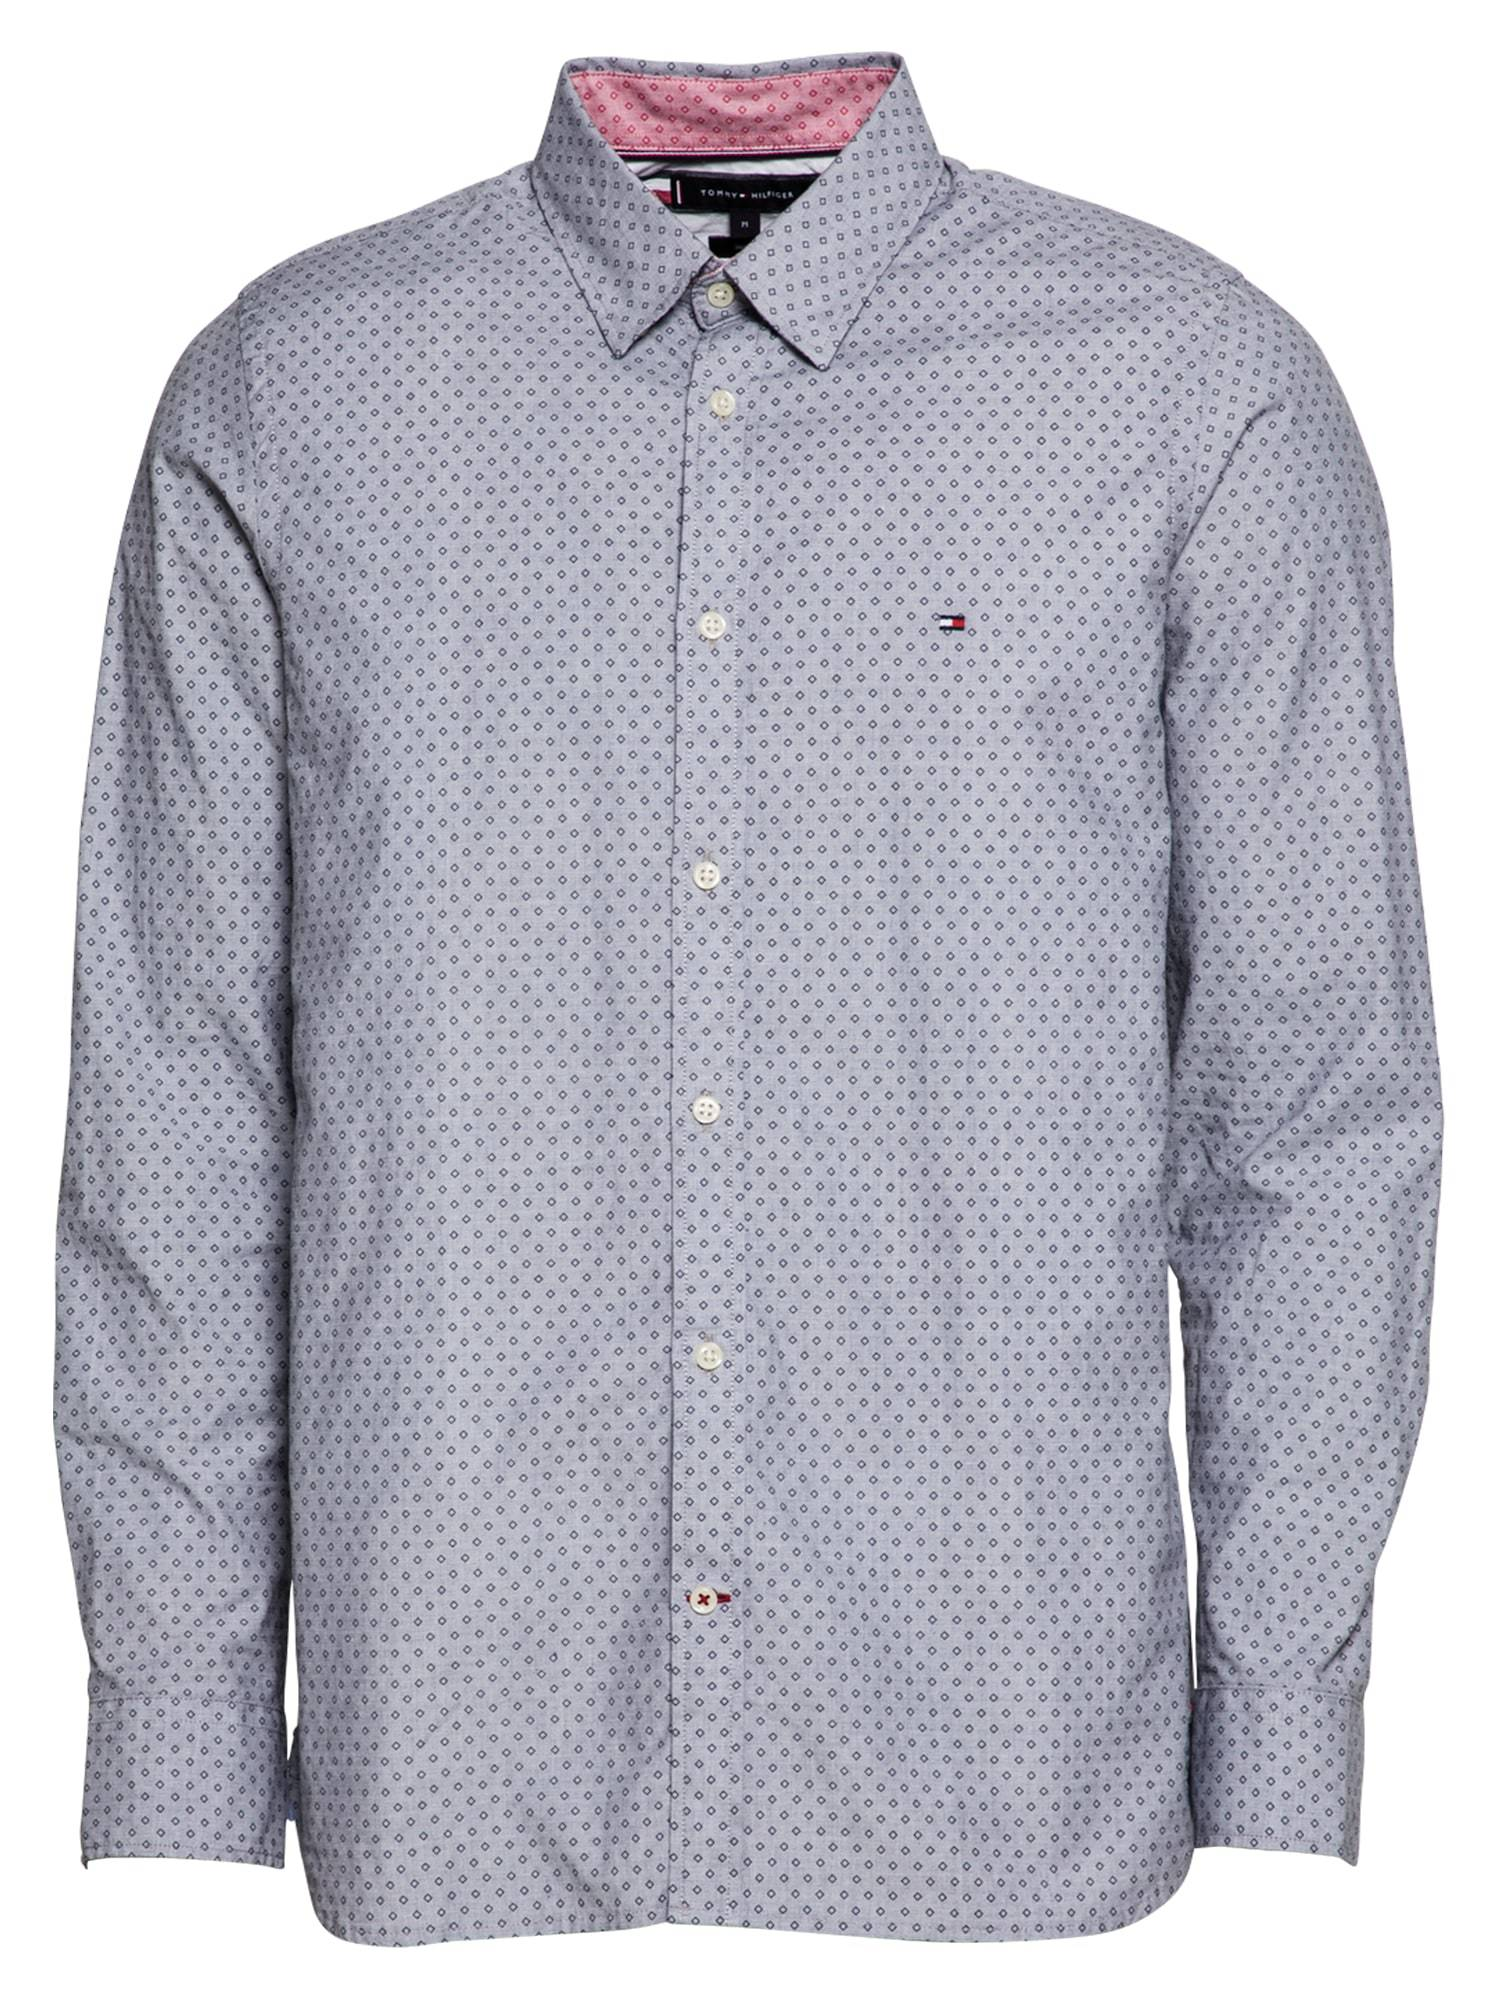 Tommy Hilfiger Chemise  - Bleu - Taille: M - male